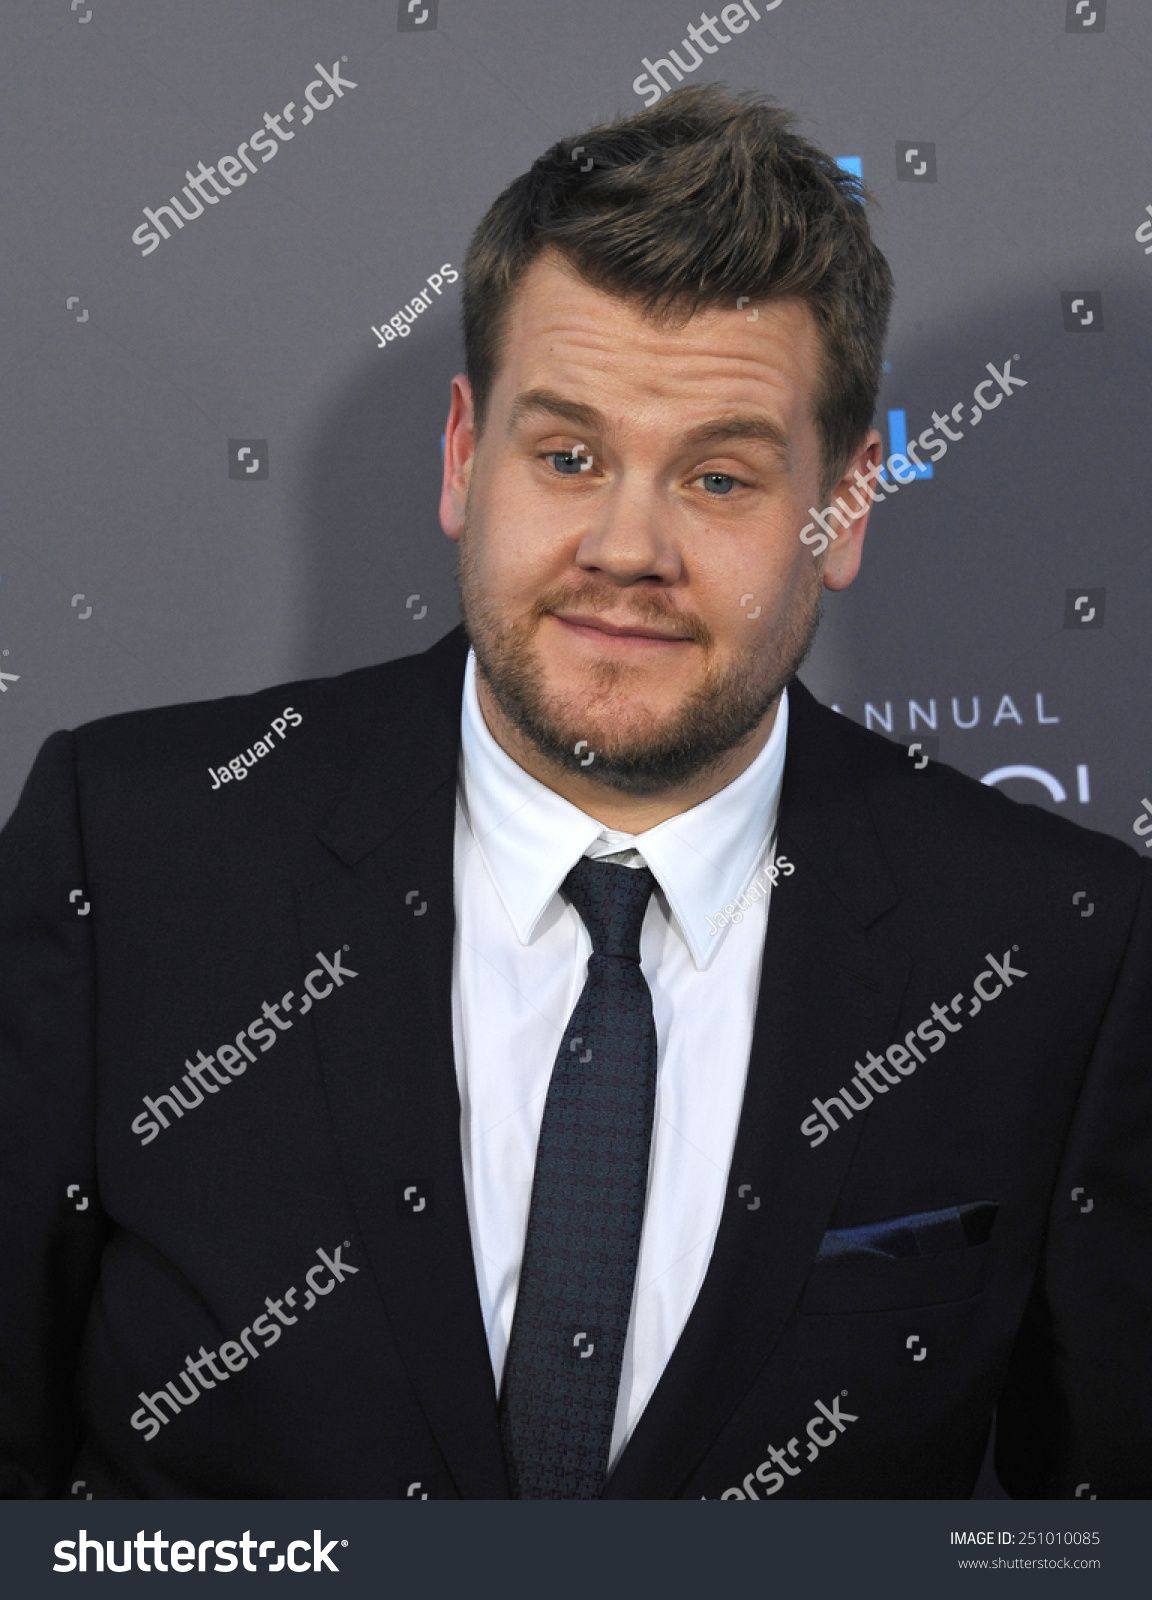 LOS ANGELES, CA - JANUARY 15, 2015: James Corden at the 20th Annual Critics' Choice Movie Awards at the Hollyw #Ad , #Affiliate, #Corden#James#ANGELES#LOS